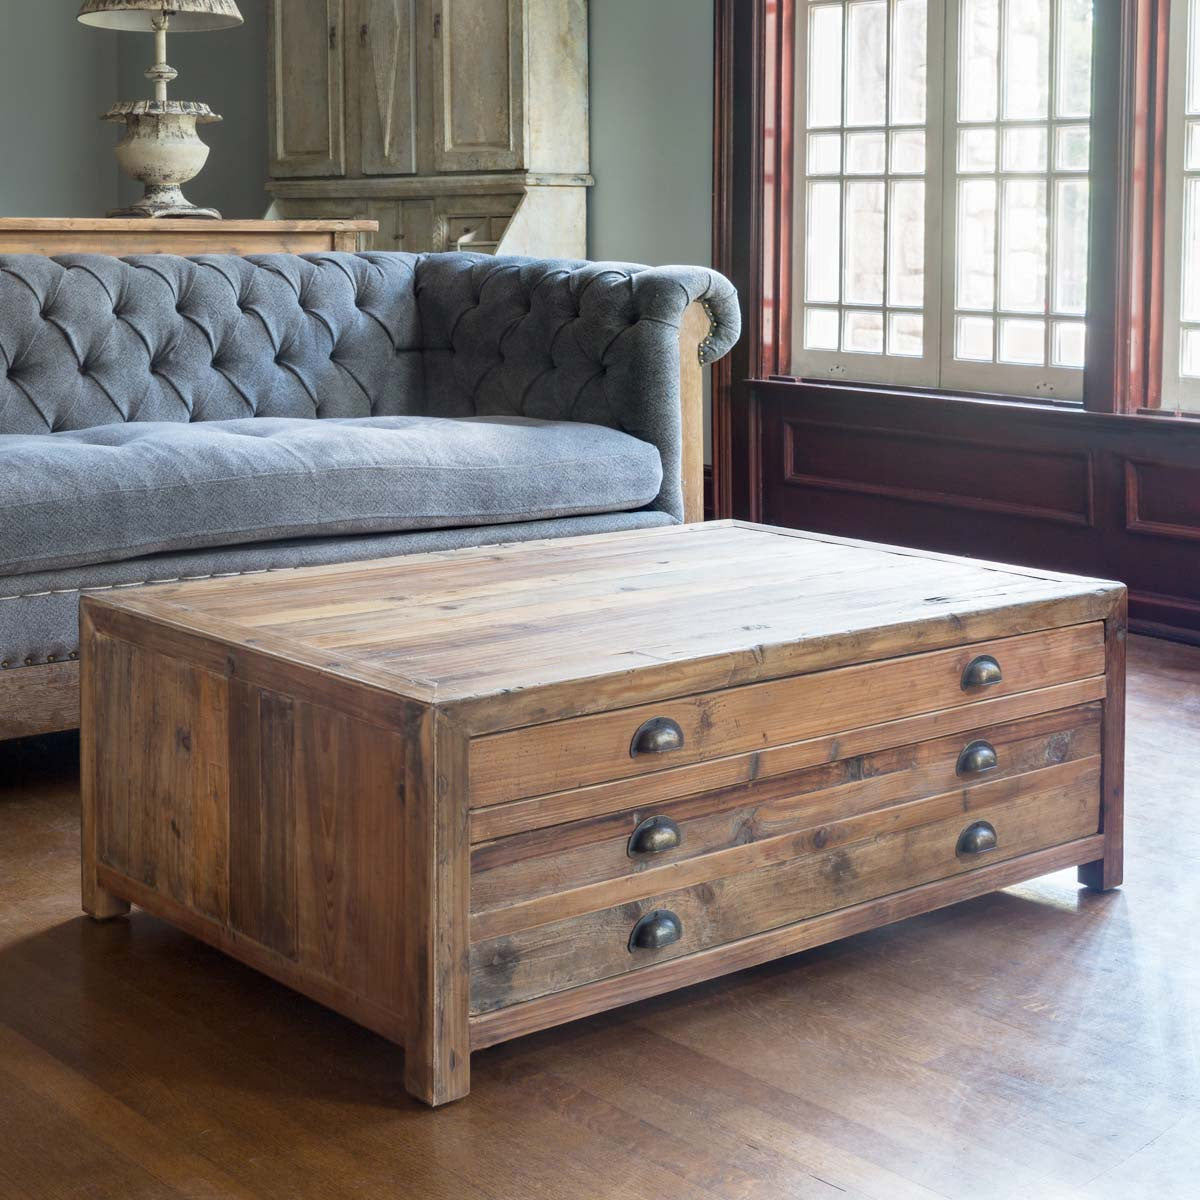 Enjoyable Lovecup Old Pine Map Drawer Coffee Table L583 Evergreenethics Interior Chair Design Evergreenethicsorg